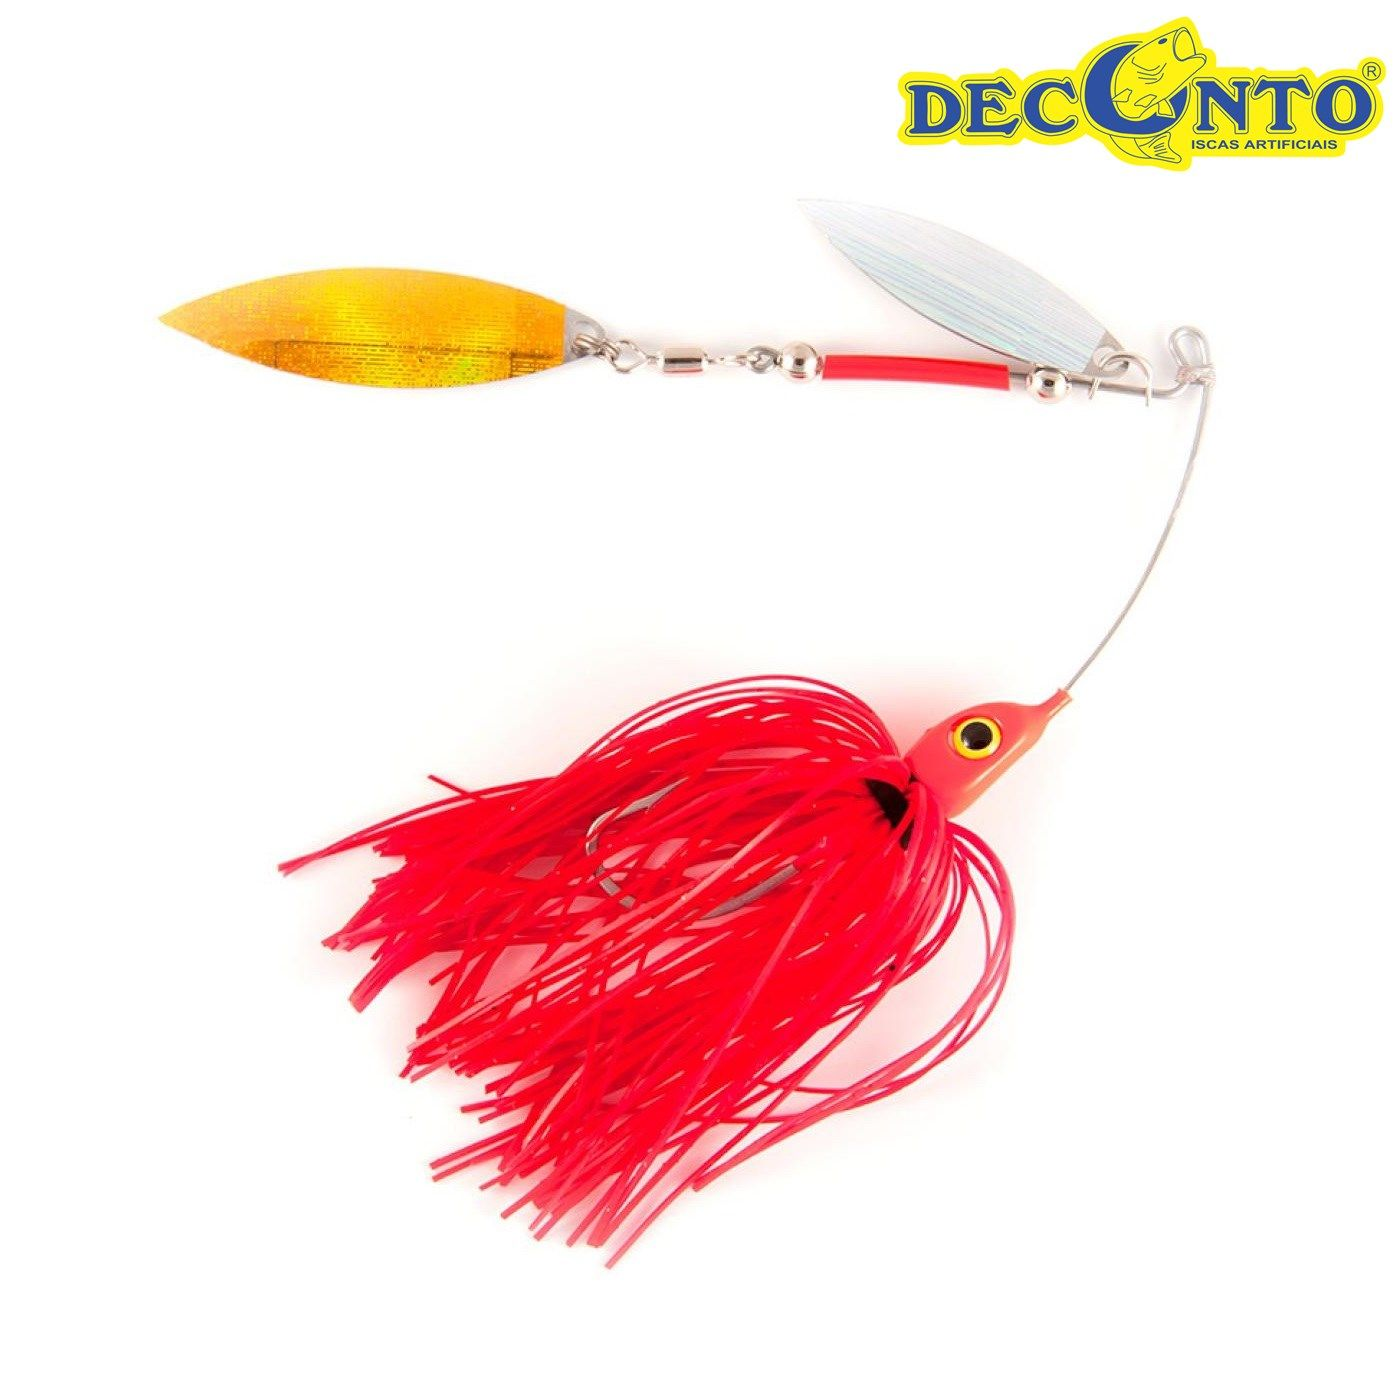 Isca Artificial Deconto Spinner Bait 2/0  - MGPesca